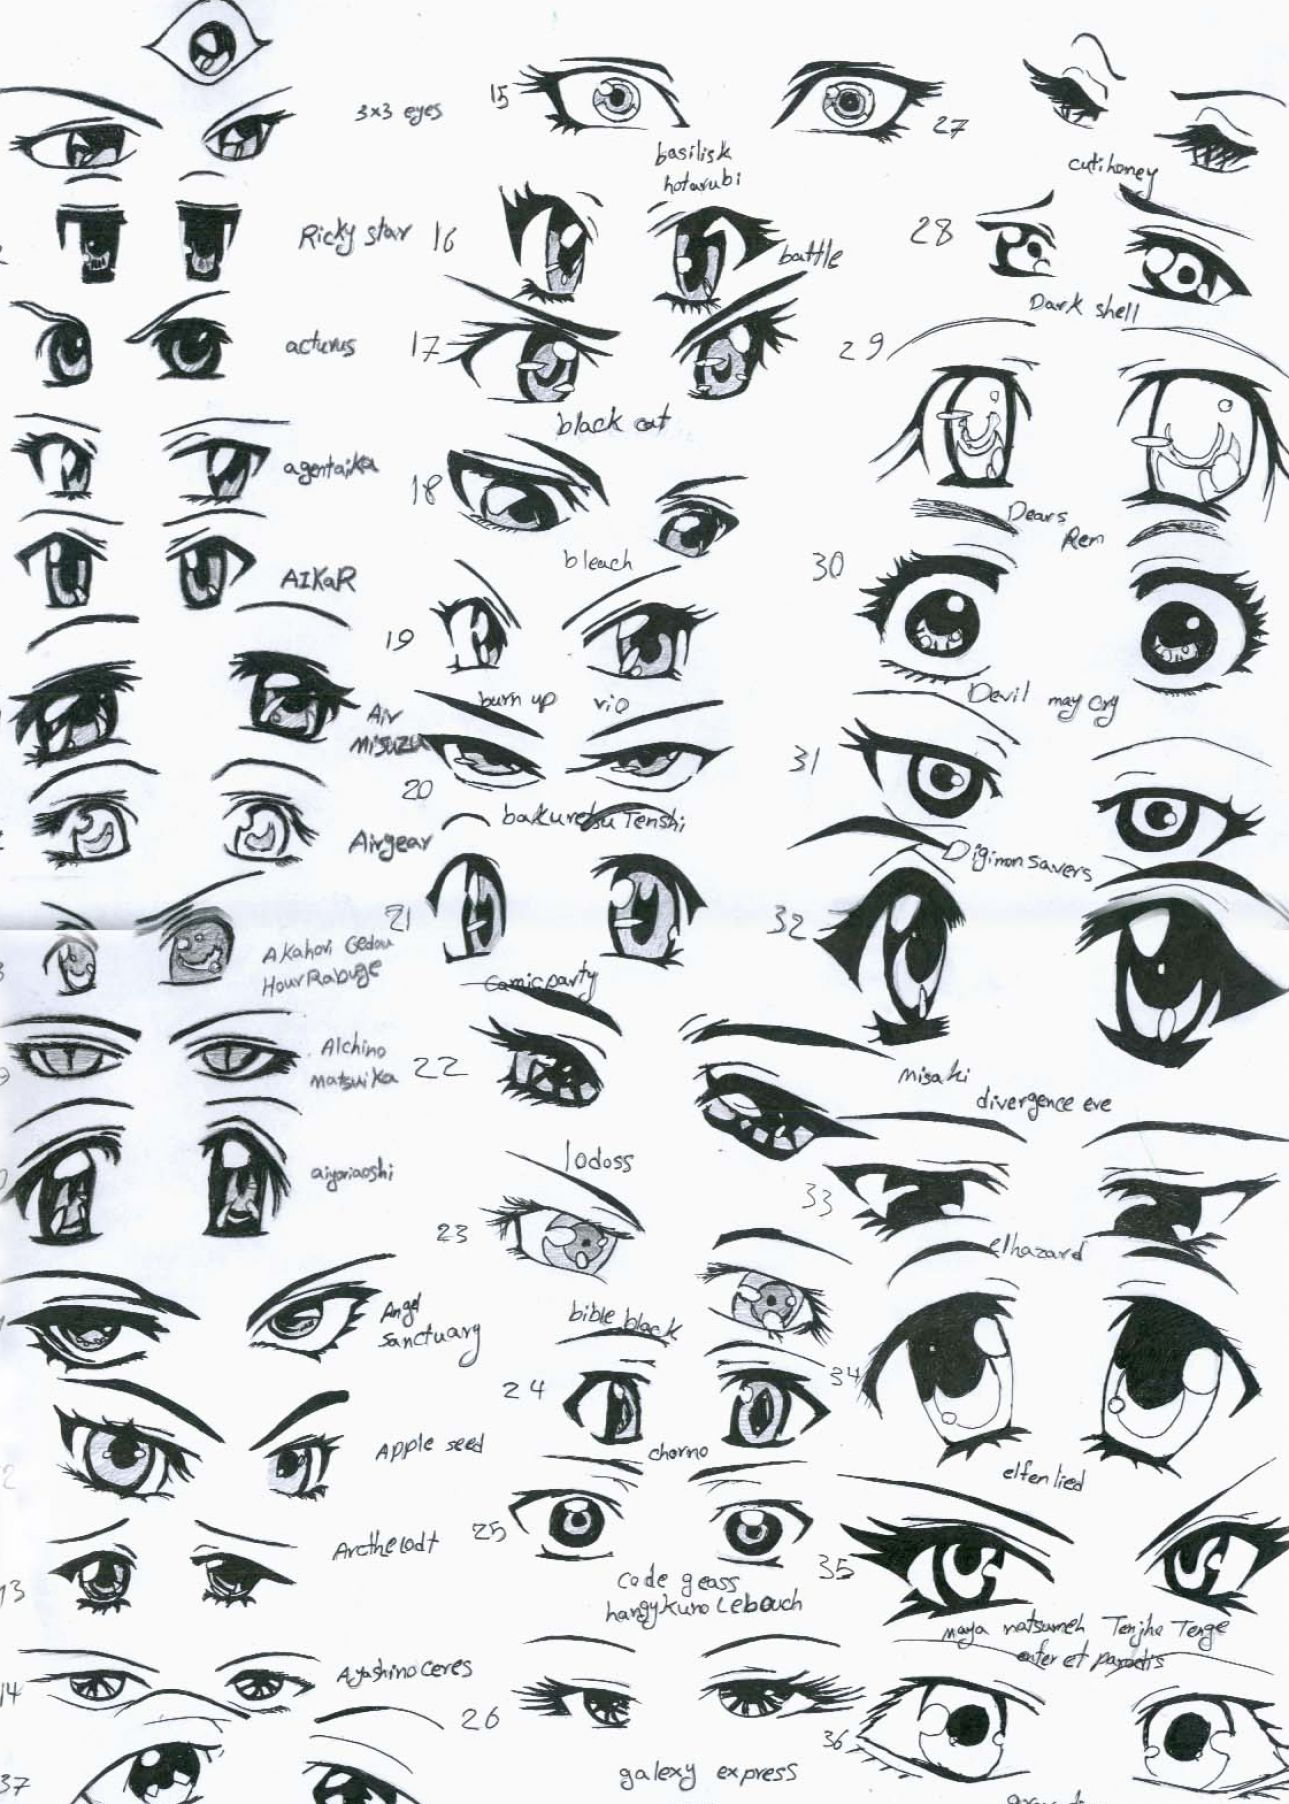 Anime Drawing Step By Step Instructions How To Draw Anime Eyes Female Step By Step 3 1289 1804 How To Draw Anime Eyes Female Anime Eyes Anime Eyes